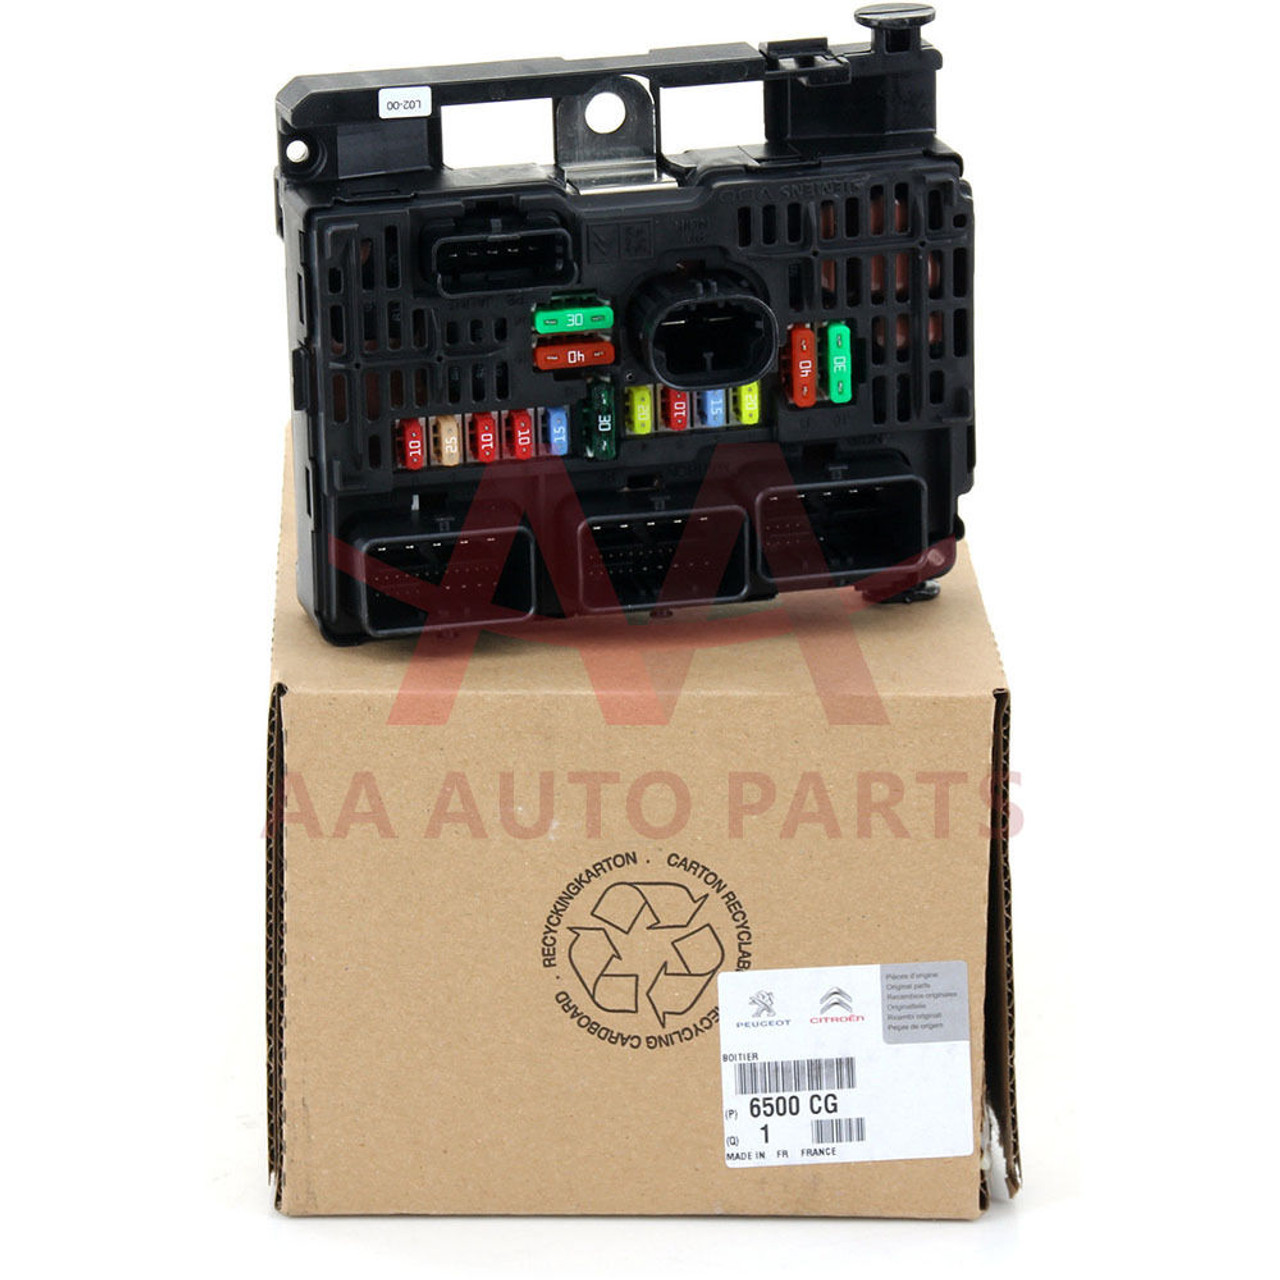 Wadsworth Fuse Box Parts Trusted Wiring Diagrams Old 60 Amp Part Diagram Electric Breakers Genuine Peugeot Citroen 3 0l V6 Engine